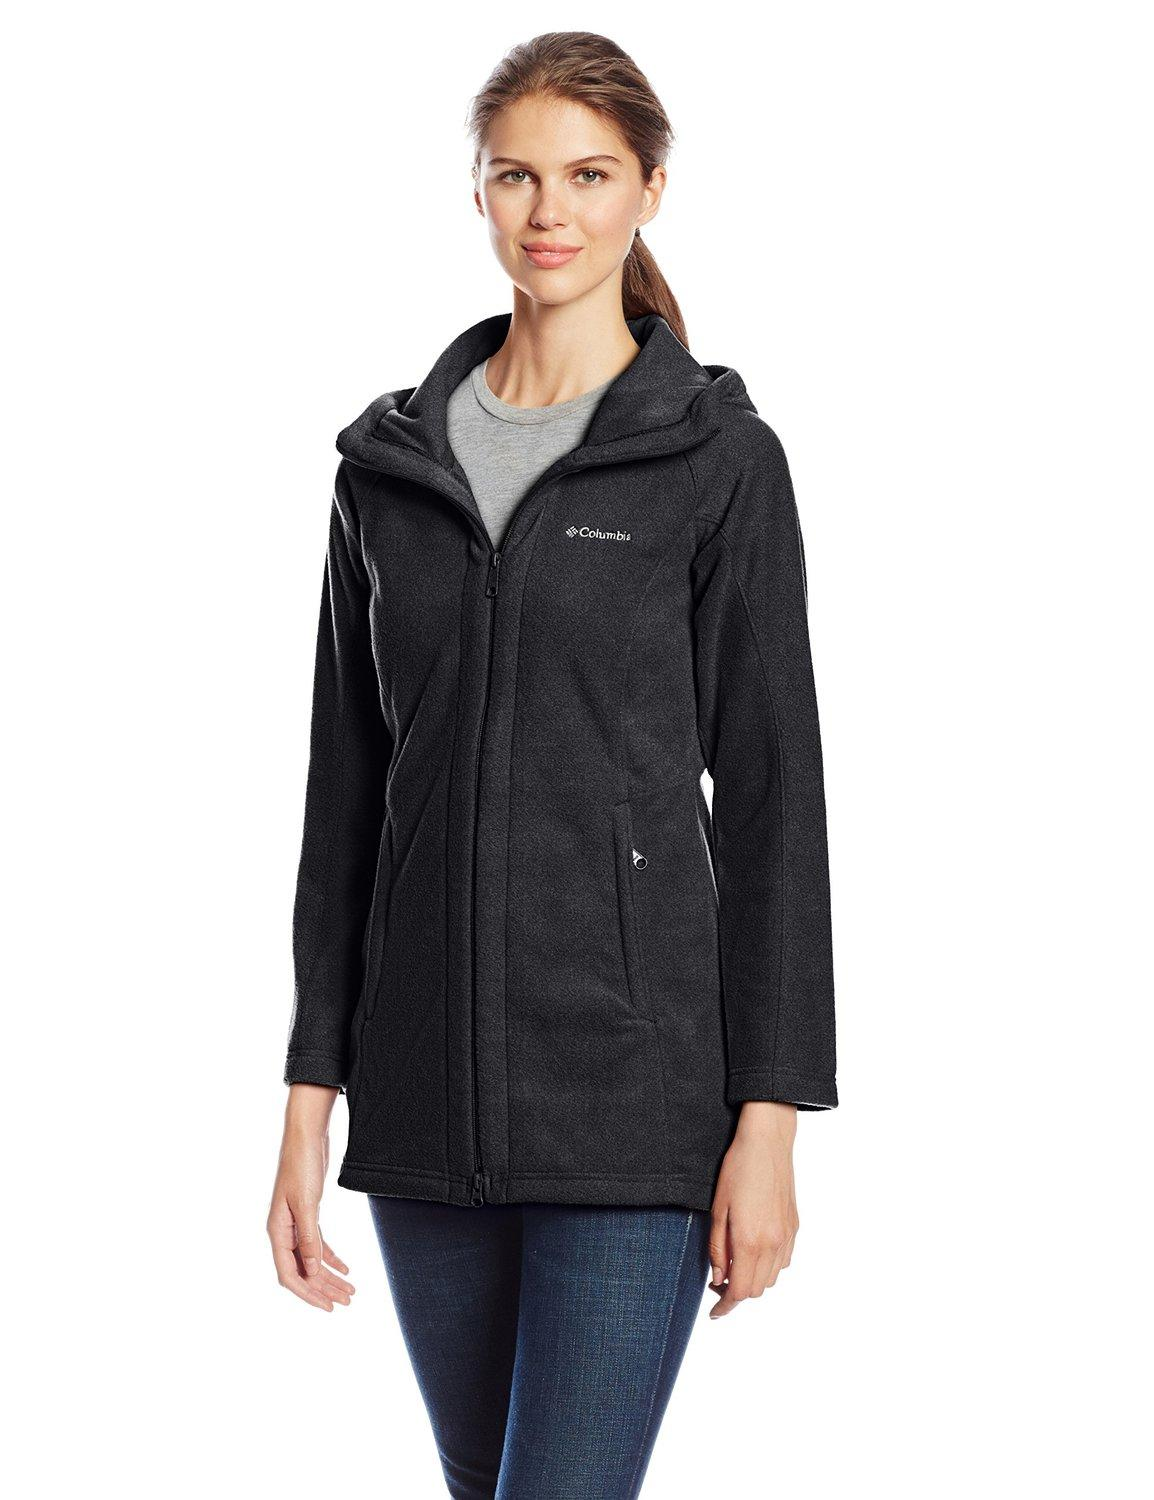 Columbia Women's Benton Springs II Long Hooded Jacket, Charcoal Heather, S